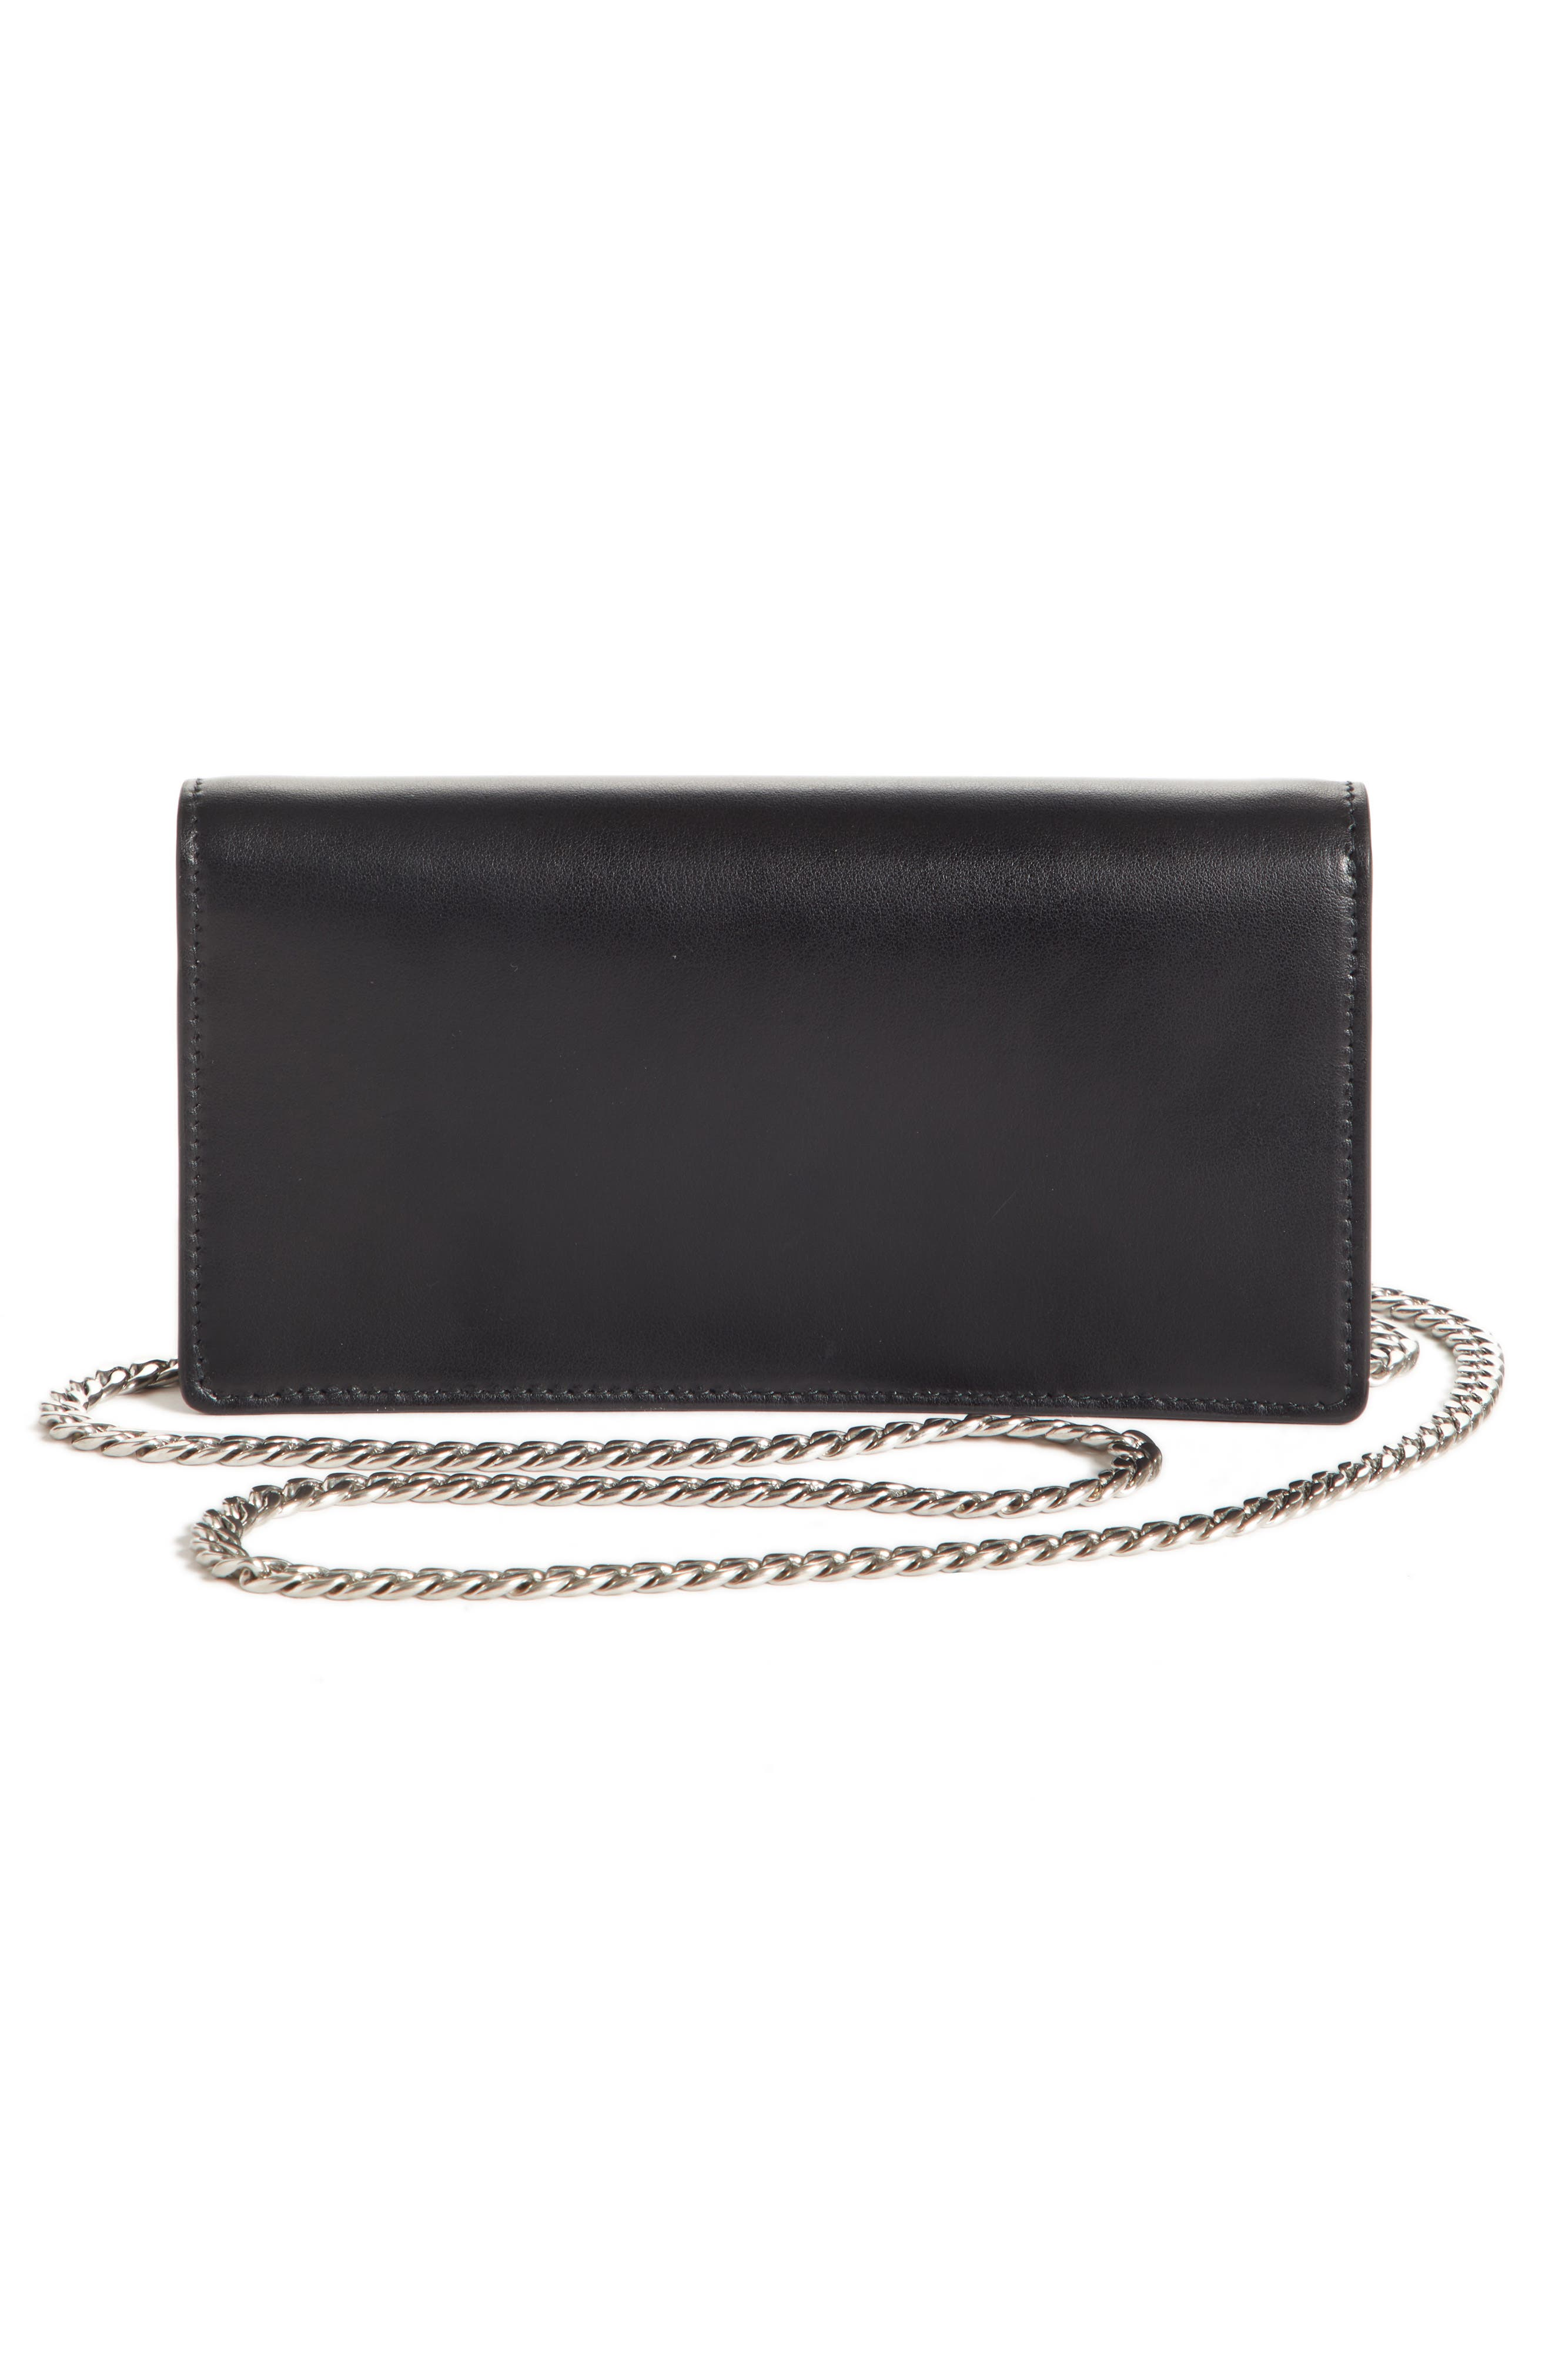 City Leather Wallet on a Chain,                             Alternate thumbnail 3, color,                             NERO/ FUXIA